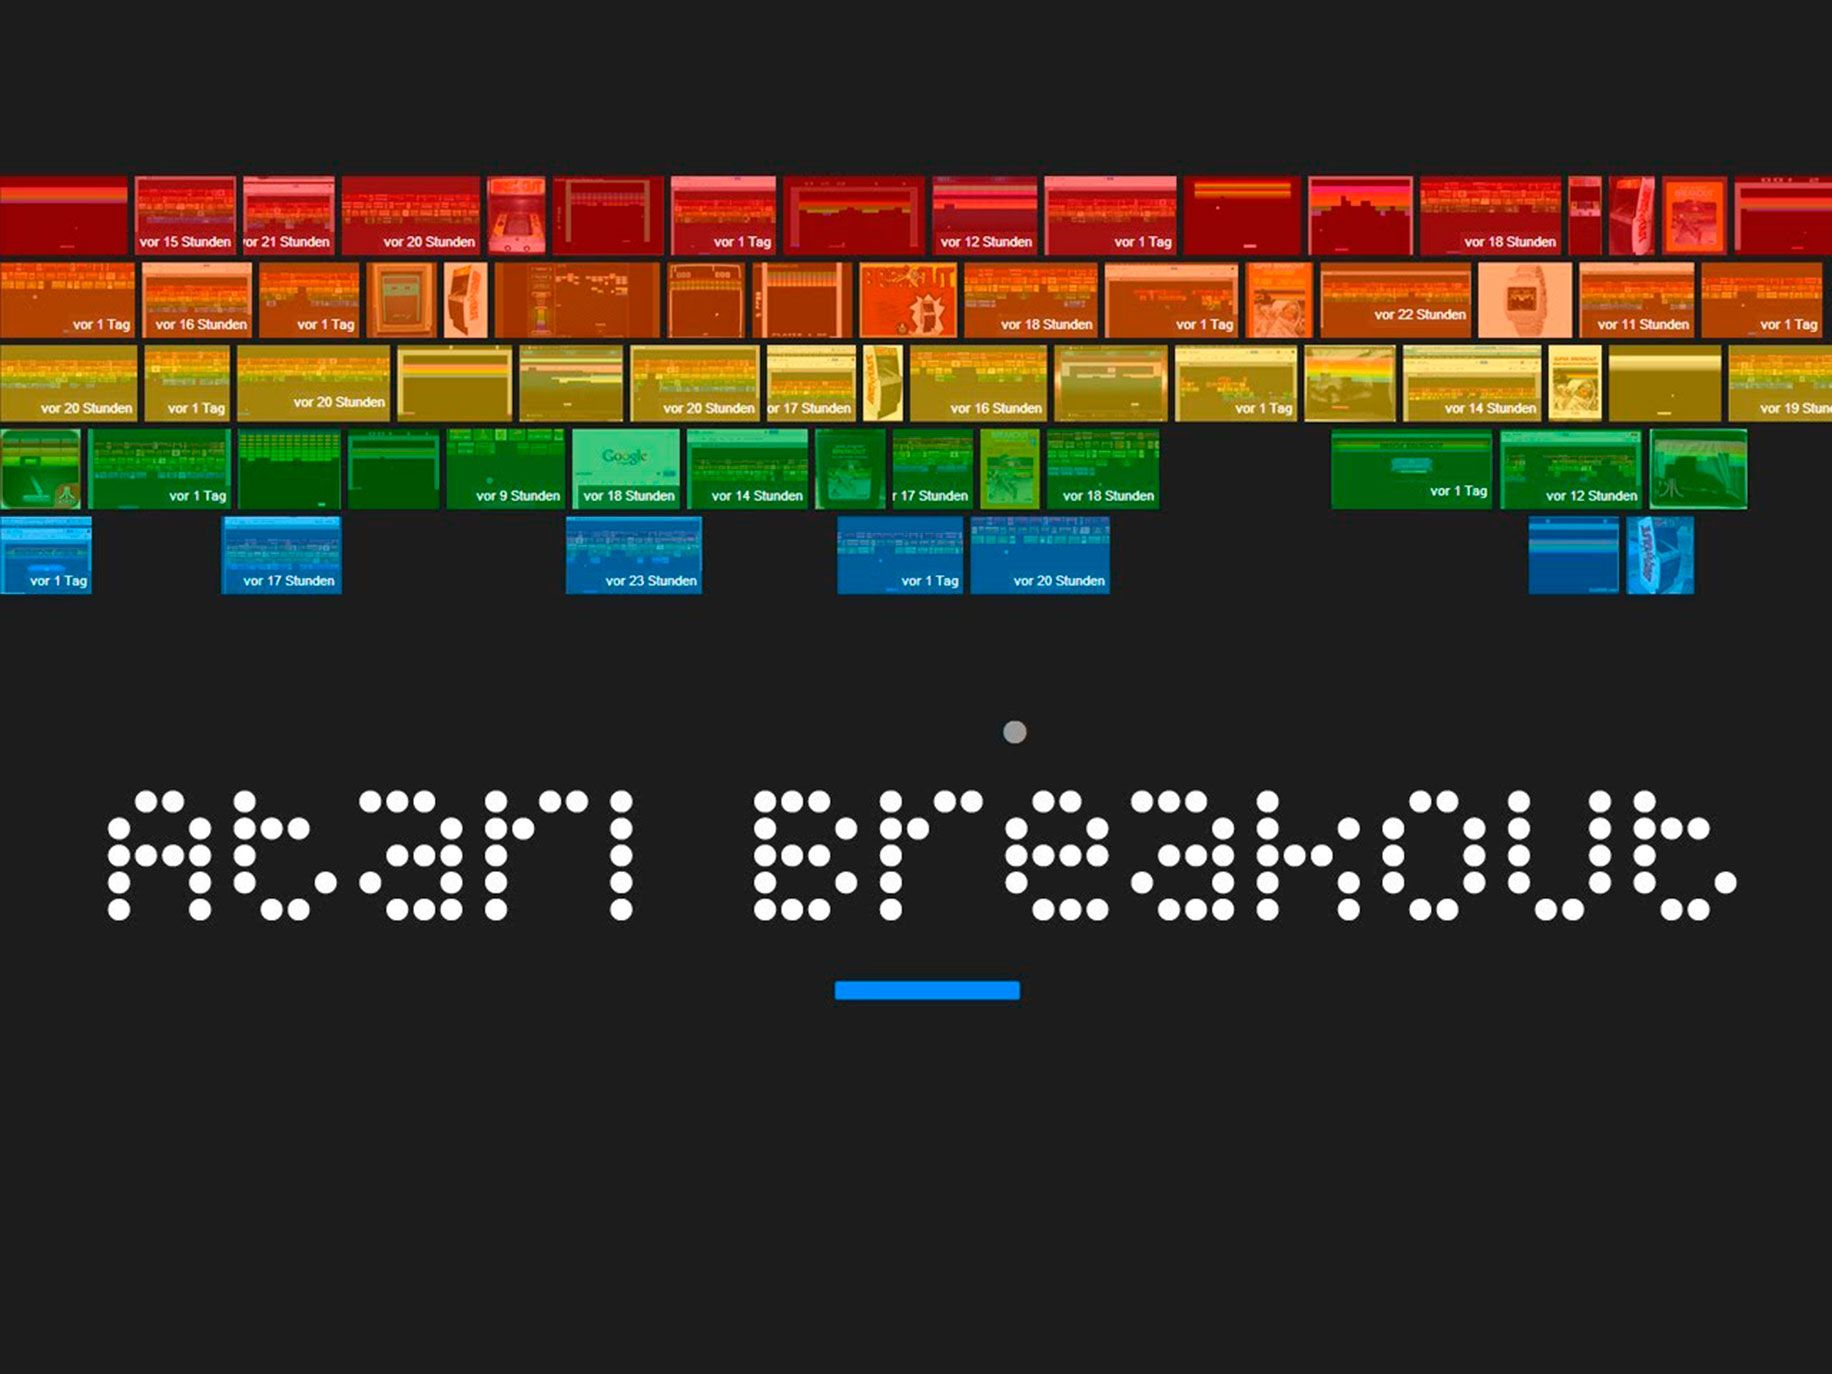 Steve Jobs worked on the video game Breakout while at Atari.